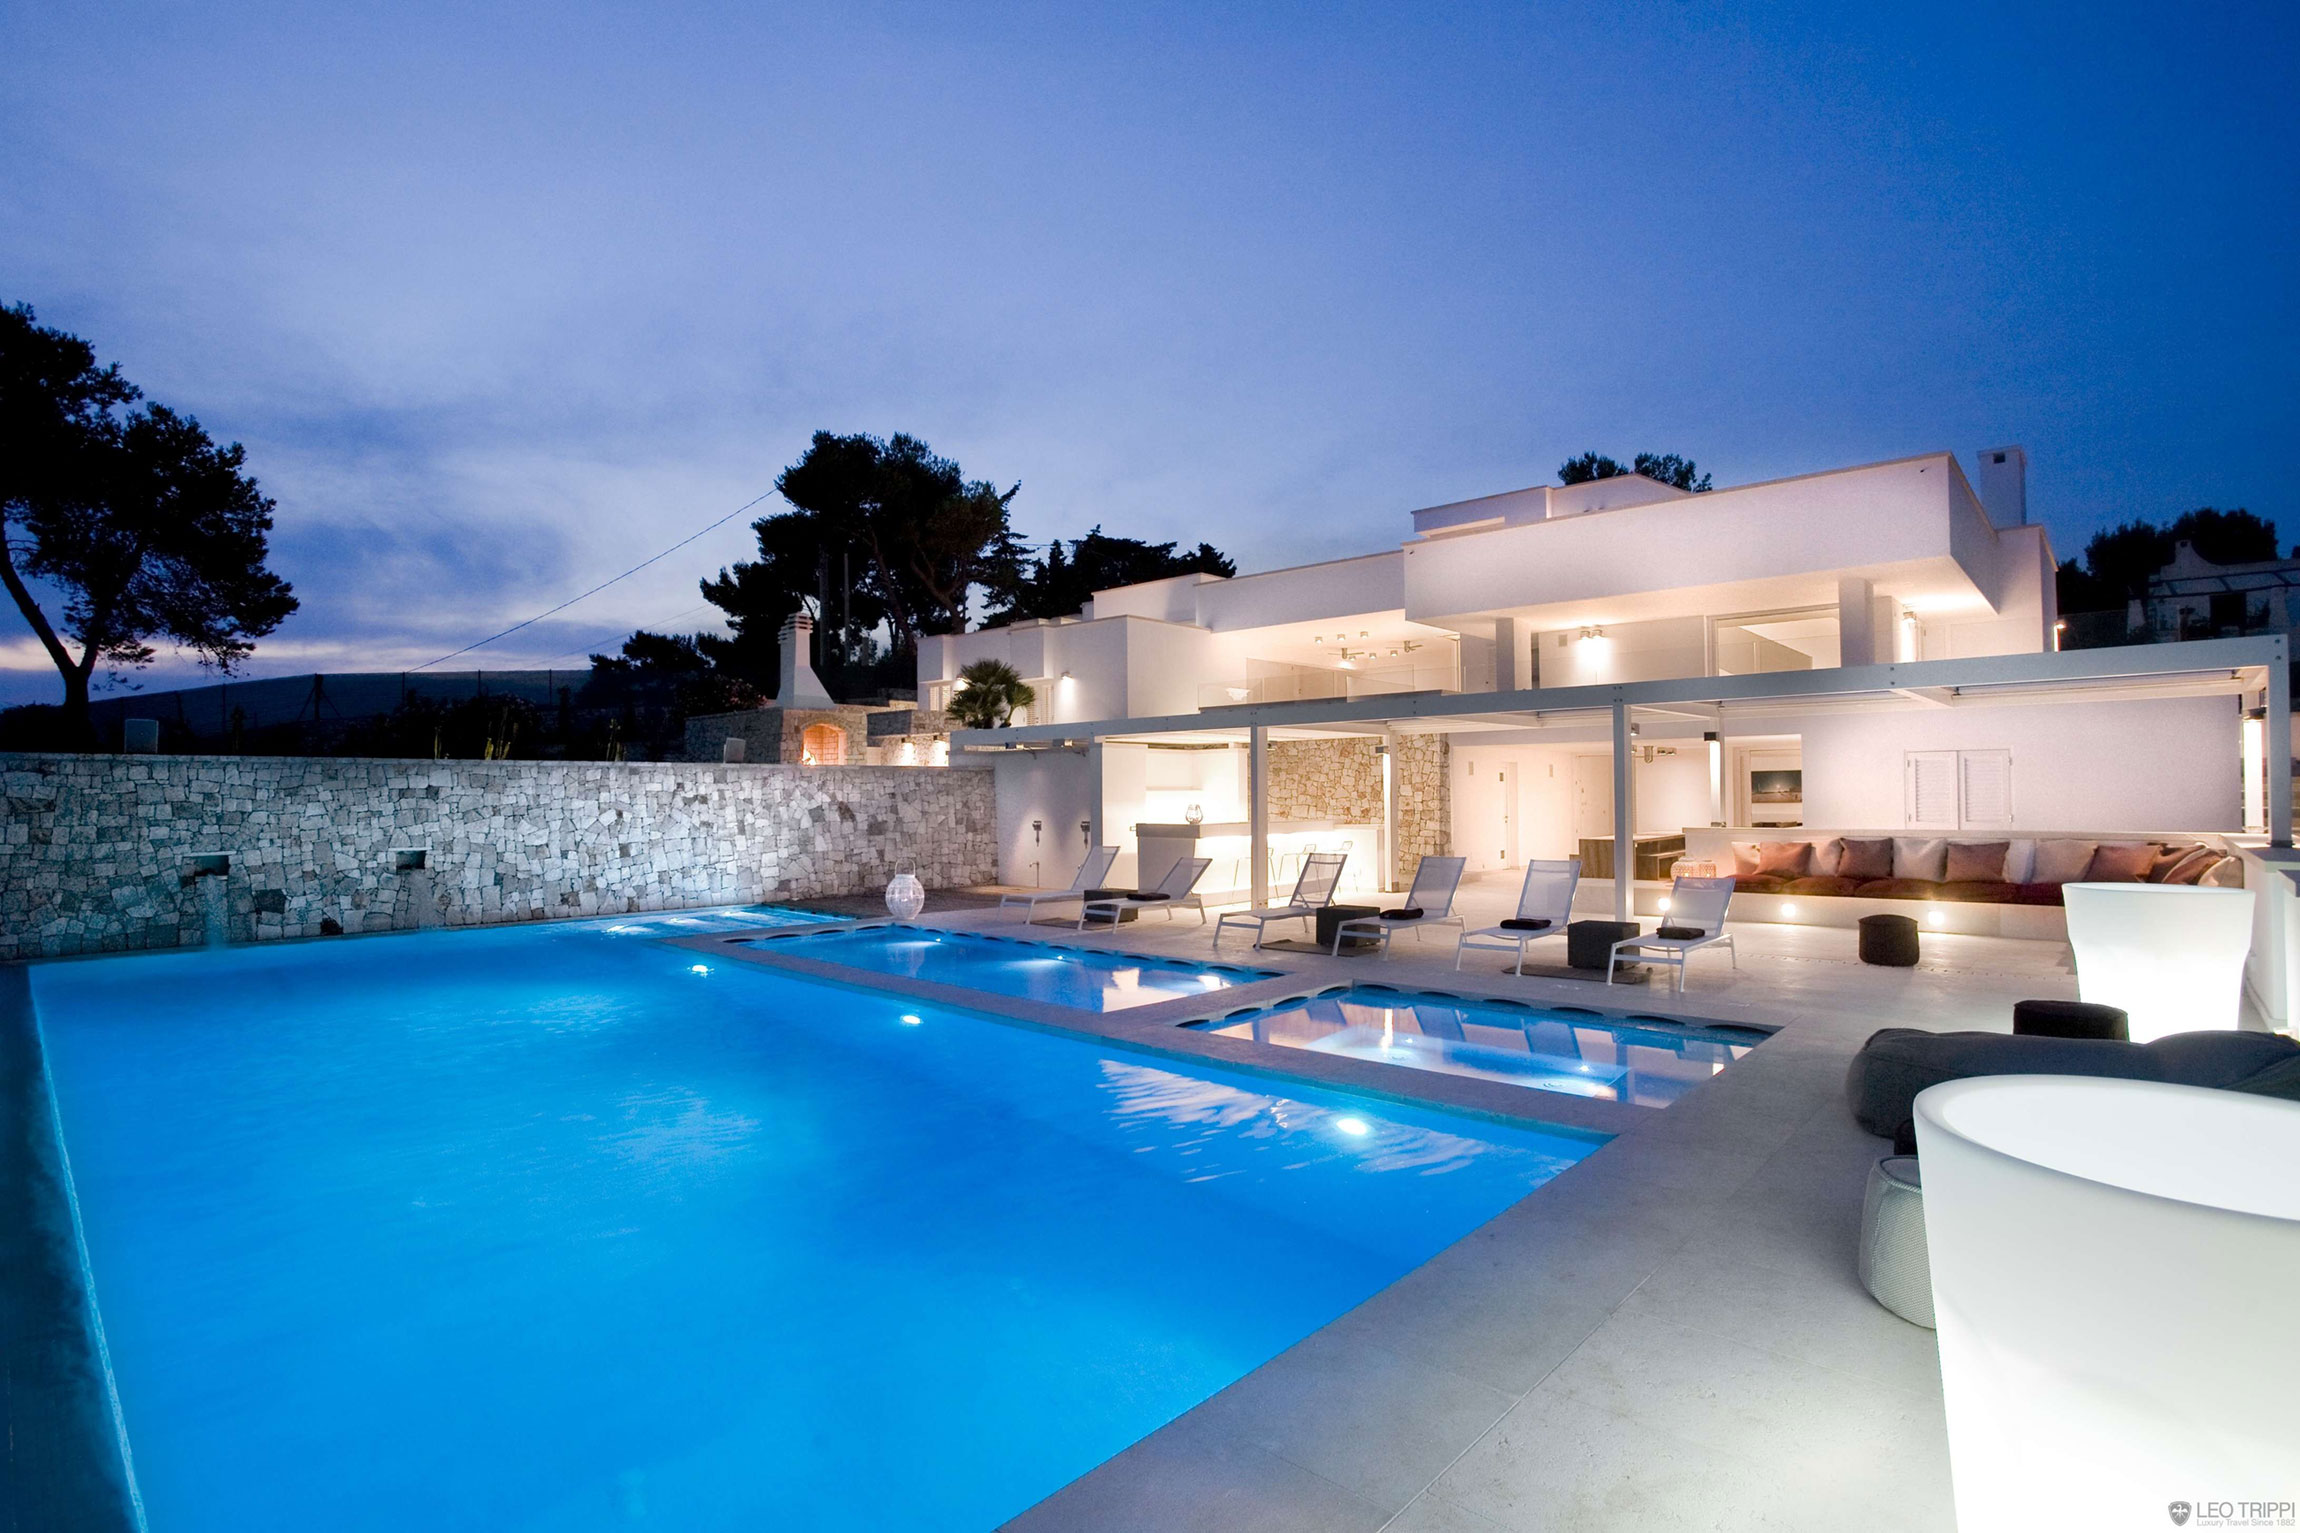 Villa bianca in apulia italy for Italian pool design 7